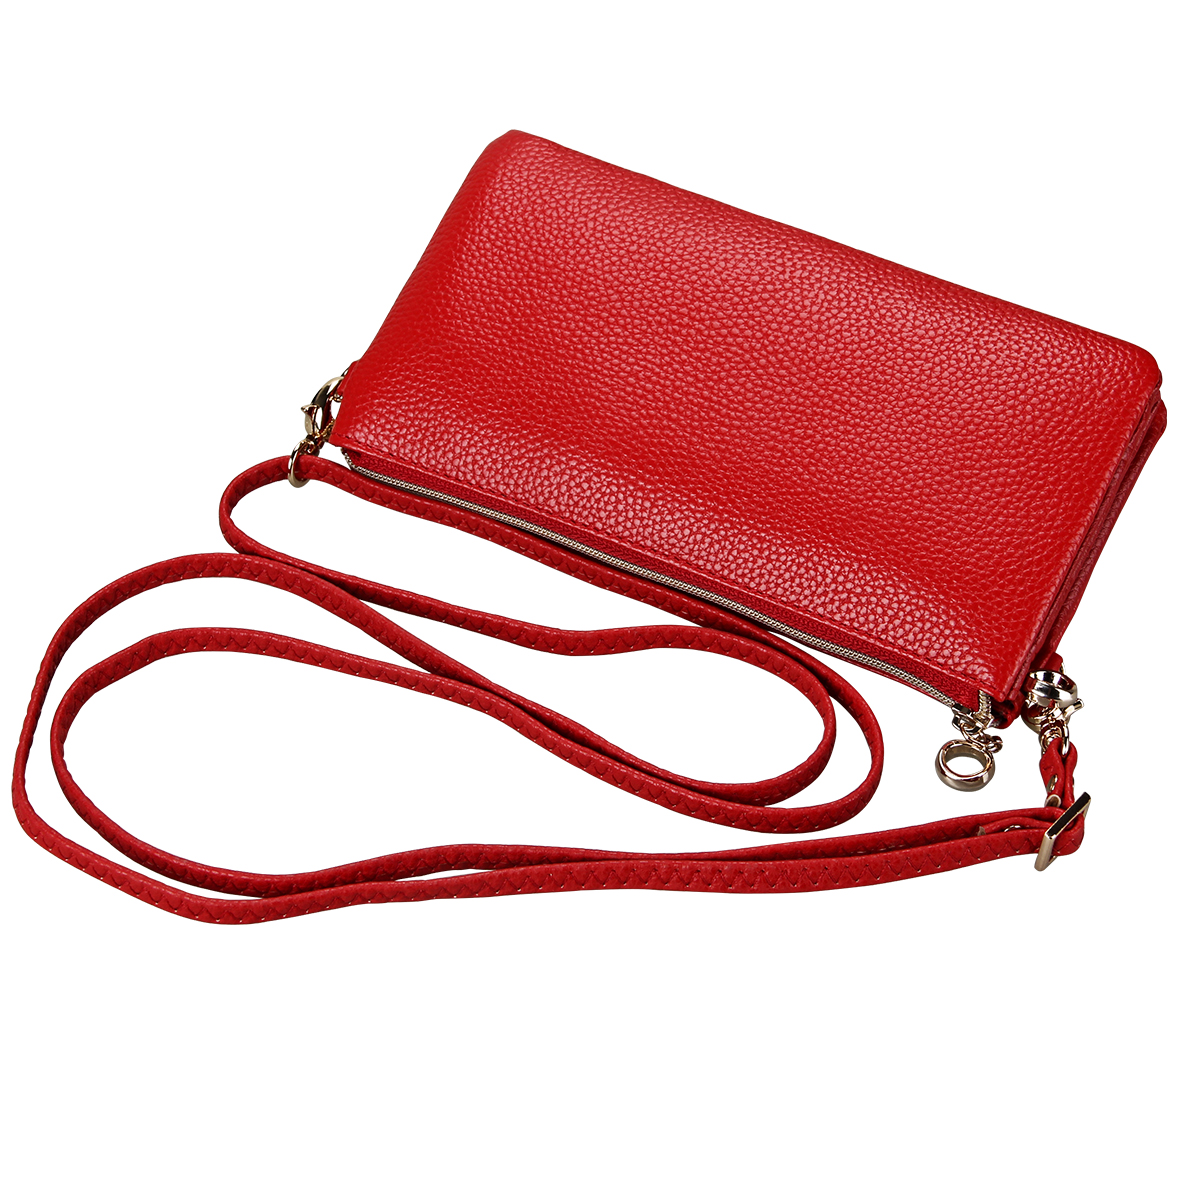 Wallets For Women Luxury Genuine Leather Clutch Phone Credit Card Female Zipper Purse Wallet Bag With Shoulder Strap